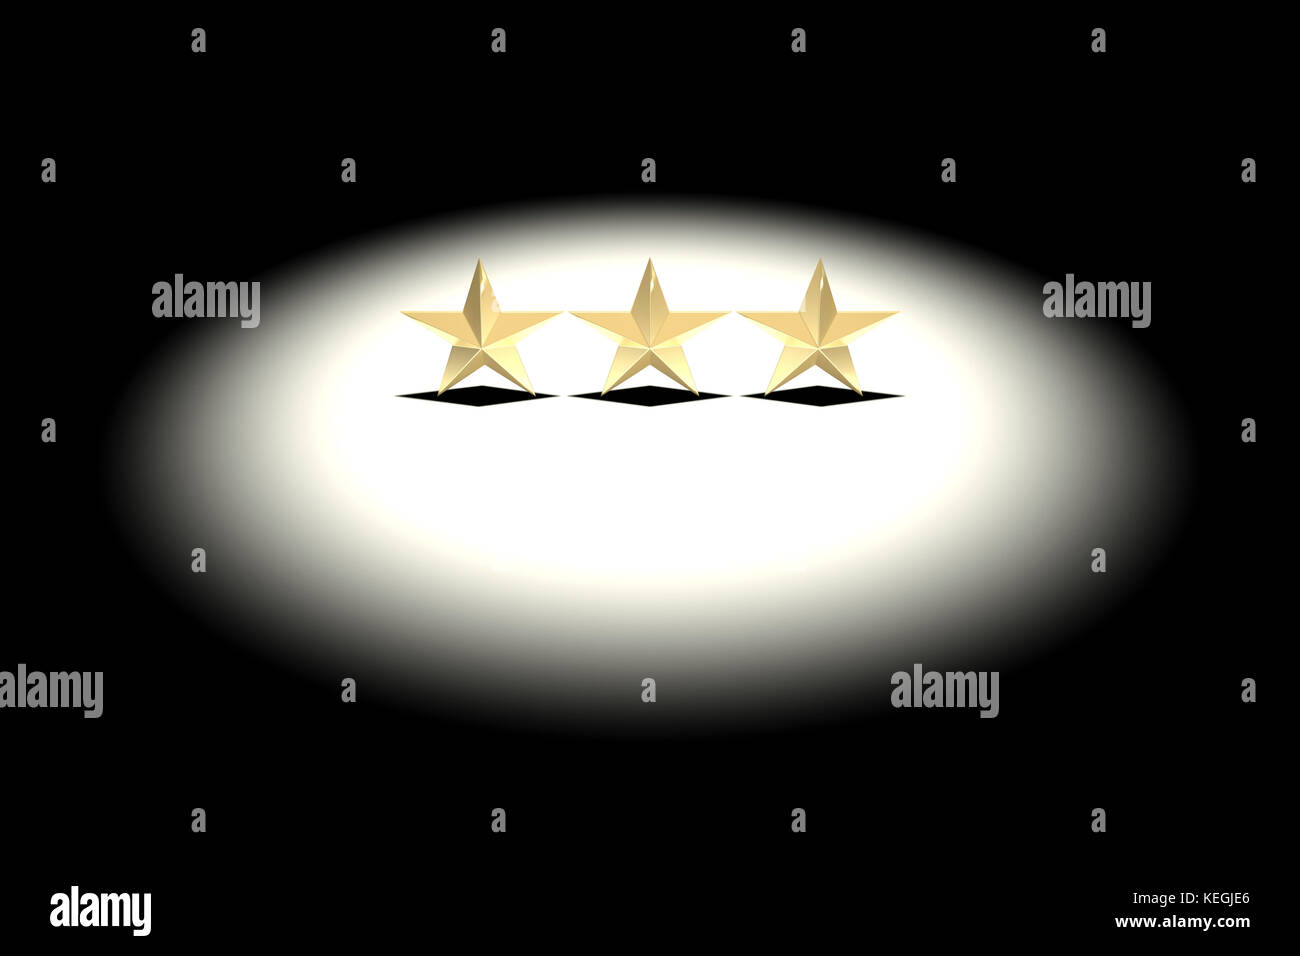 3 Yellow Stars Stock Photos Amp 3 Yellow Stars Stock Images